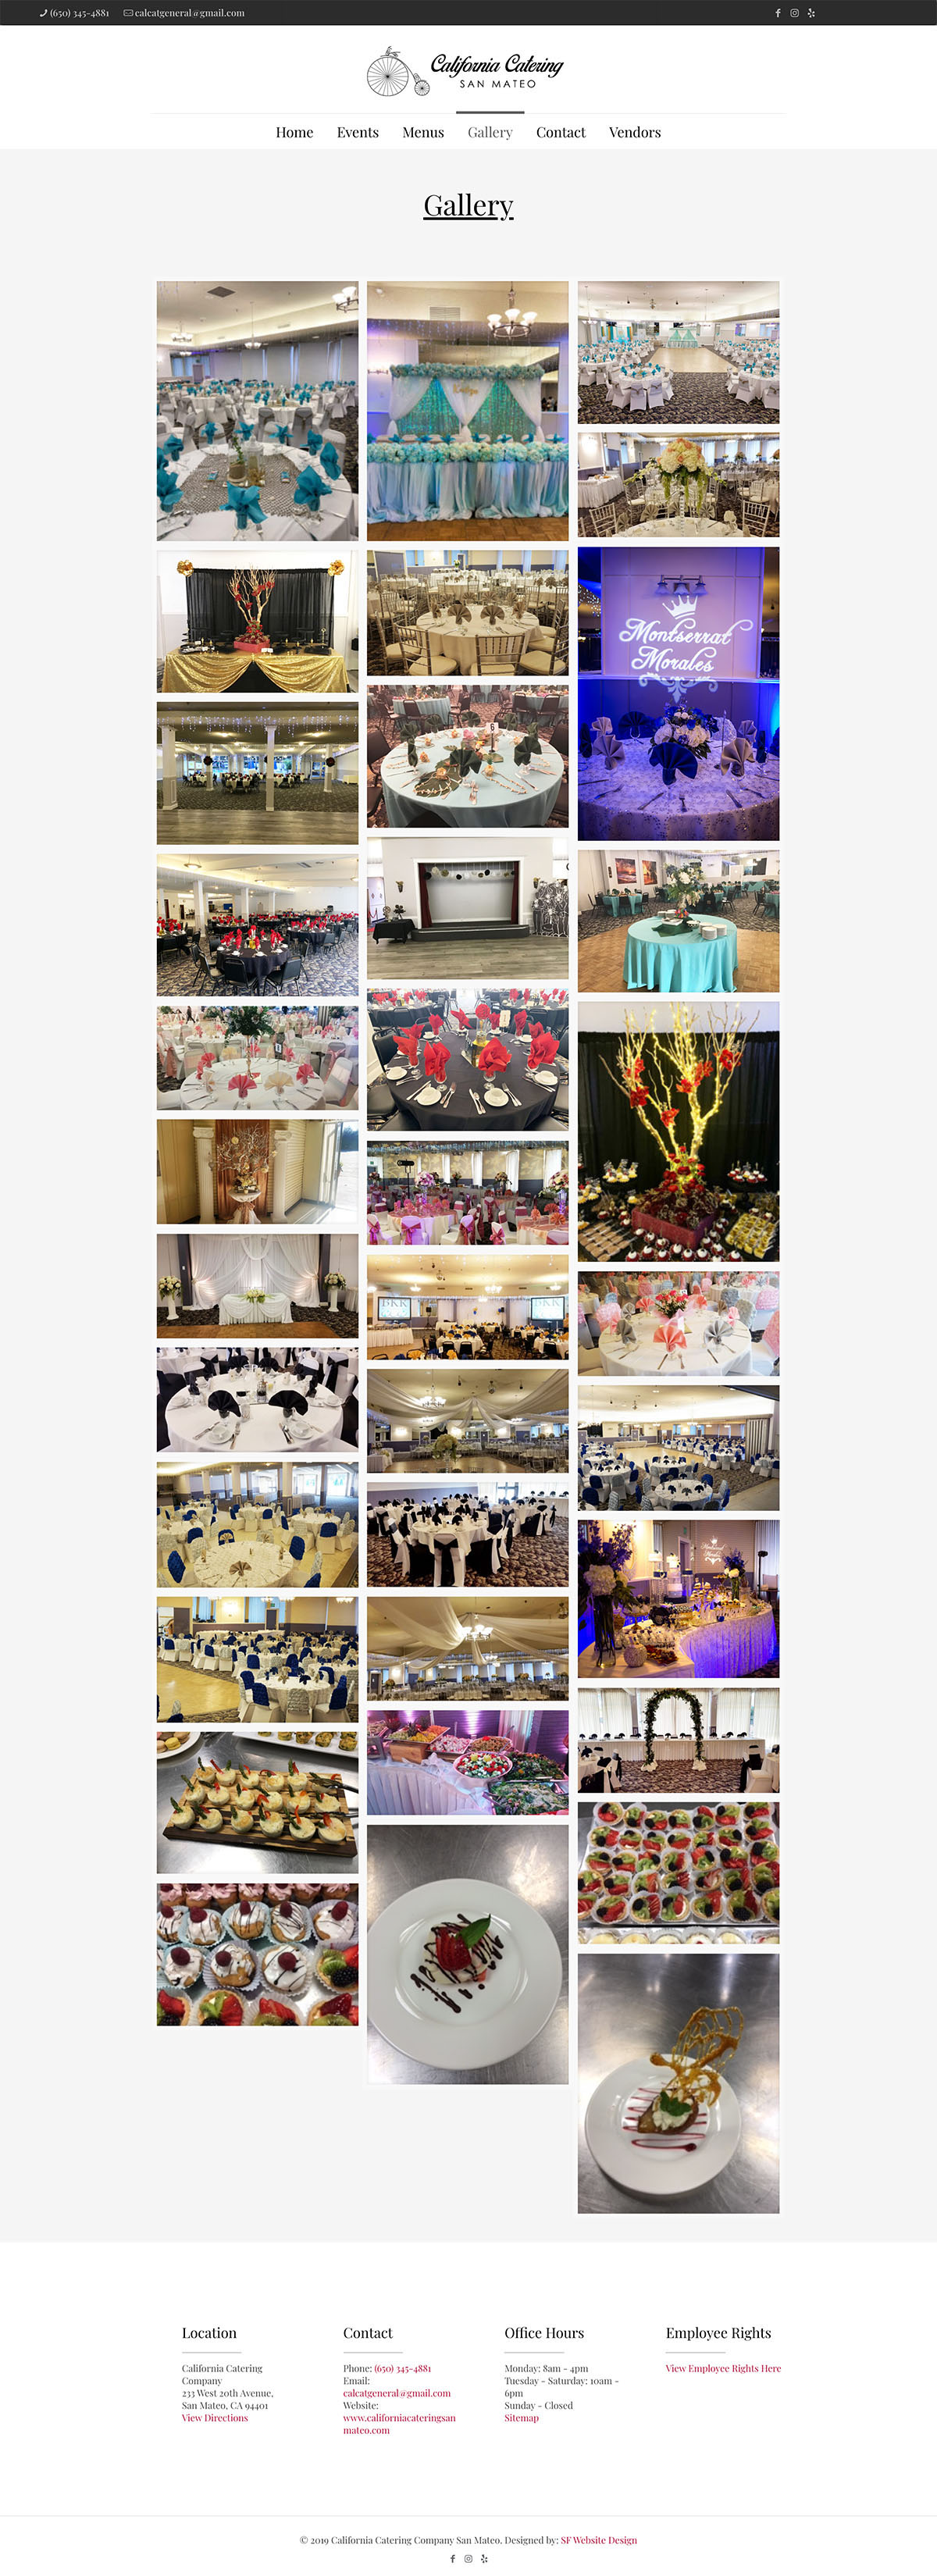 Corporate and Social Event Gallery Design